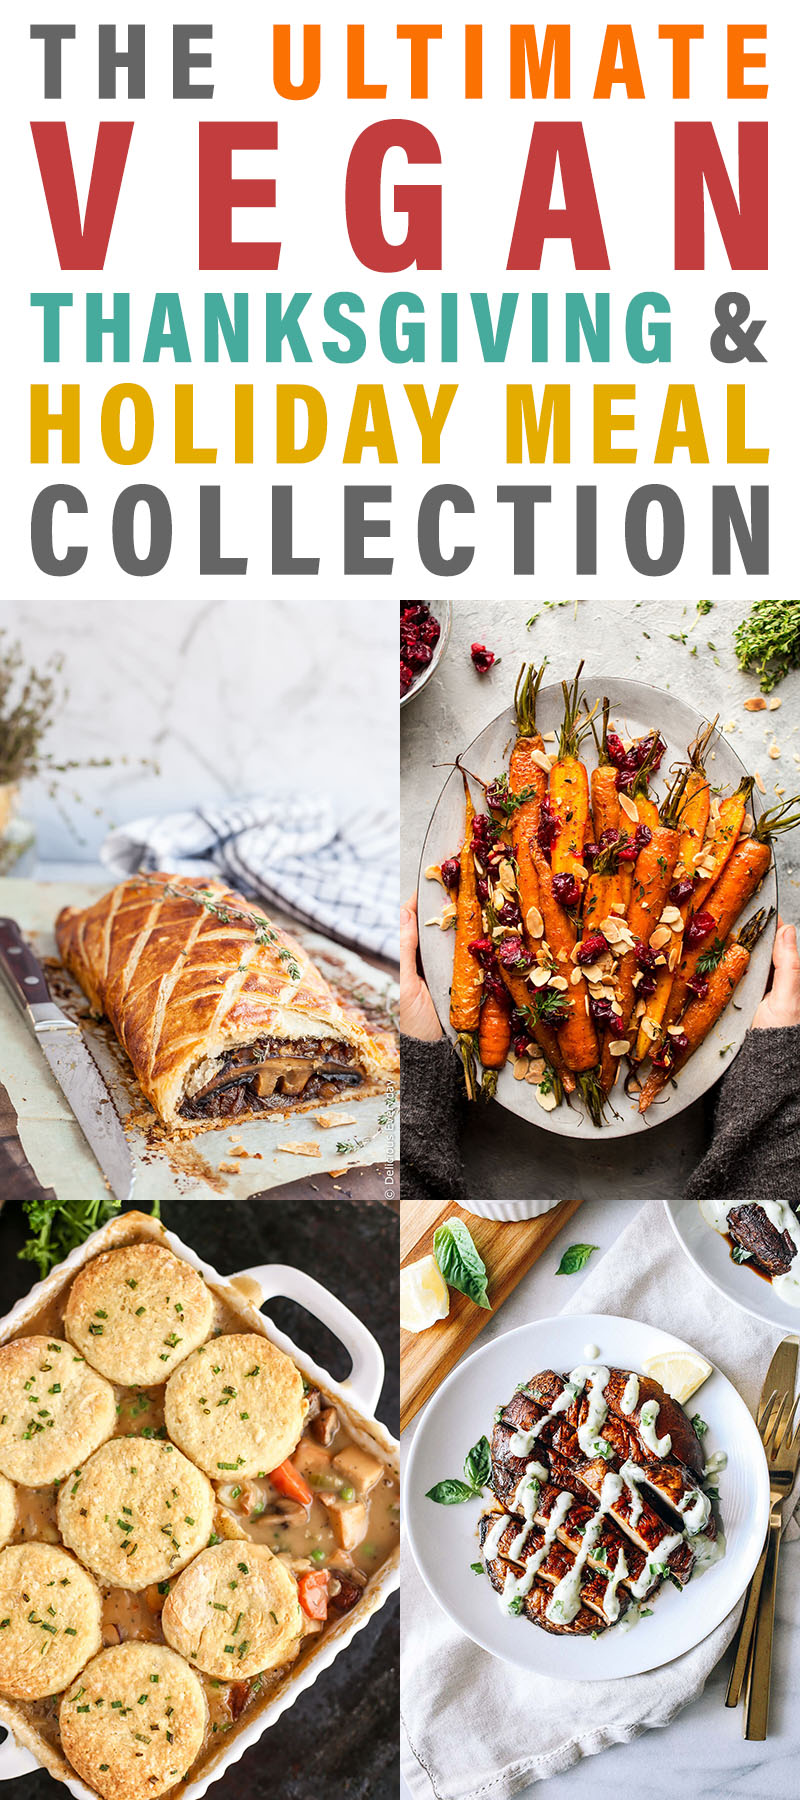 The Ultimate Vegan Thanksgiving & Holiday Meal Collection is just what you have been looking for to plan your upcoming feast! A selection of Yumminess!